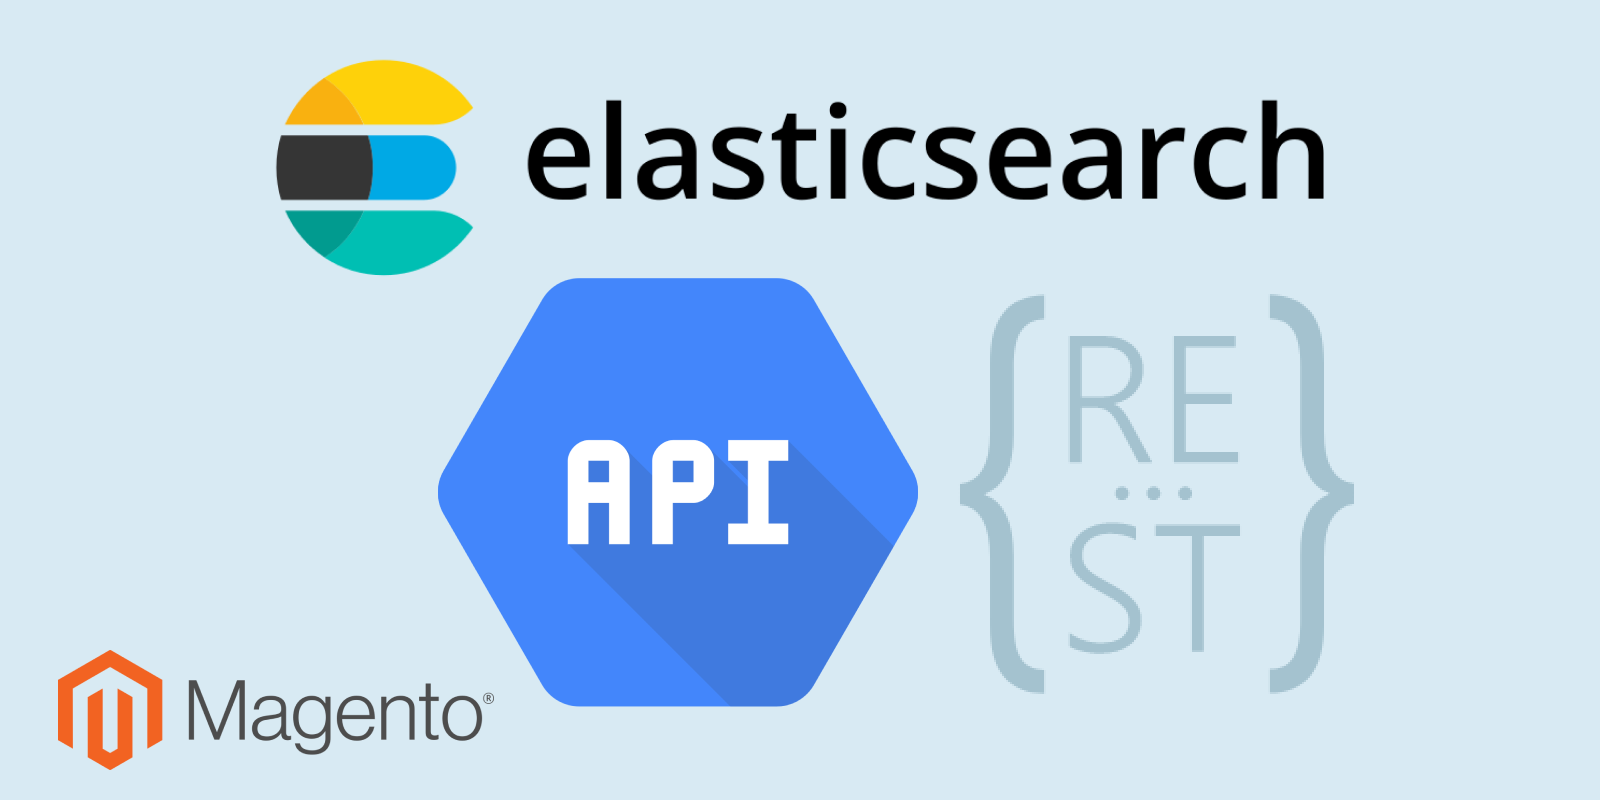 Magento and Elasticsearch REST API: The must-have developers' toolset